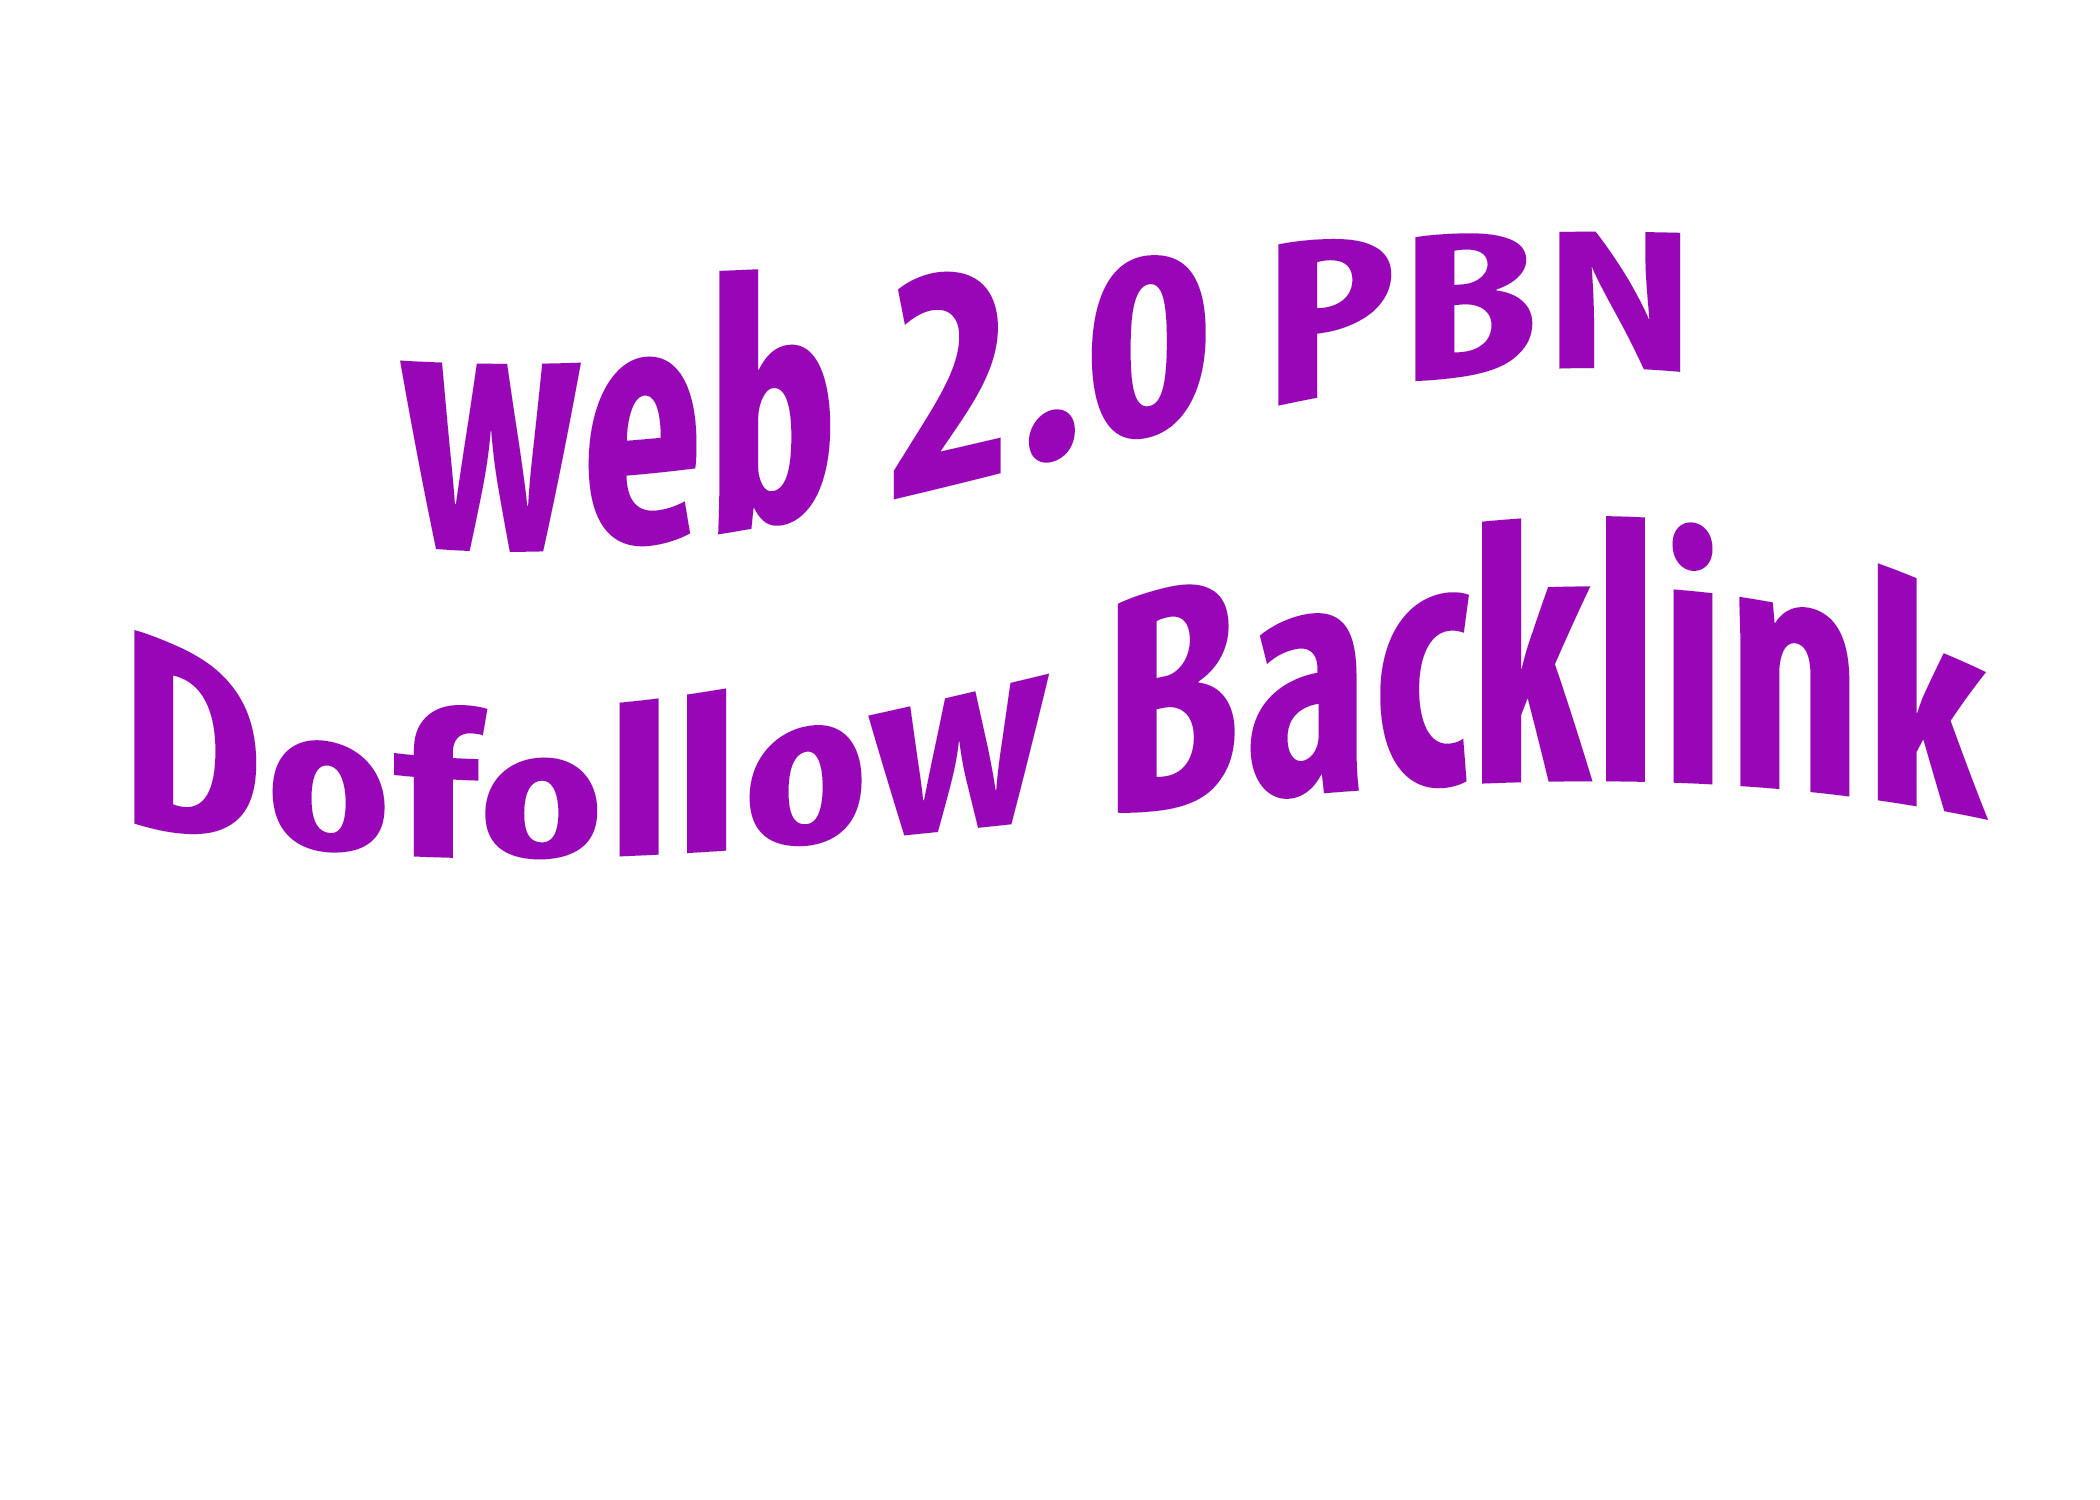 1000 Permanent web 2.0 PBN Dofollow Backlink with High TF,  CF,  DA,  PA with unique website